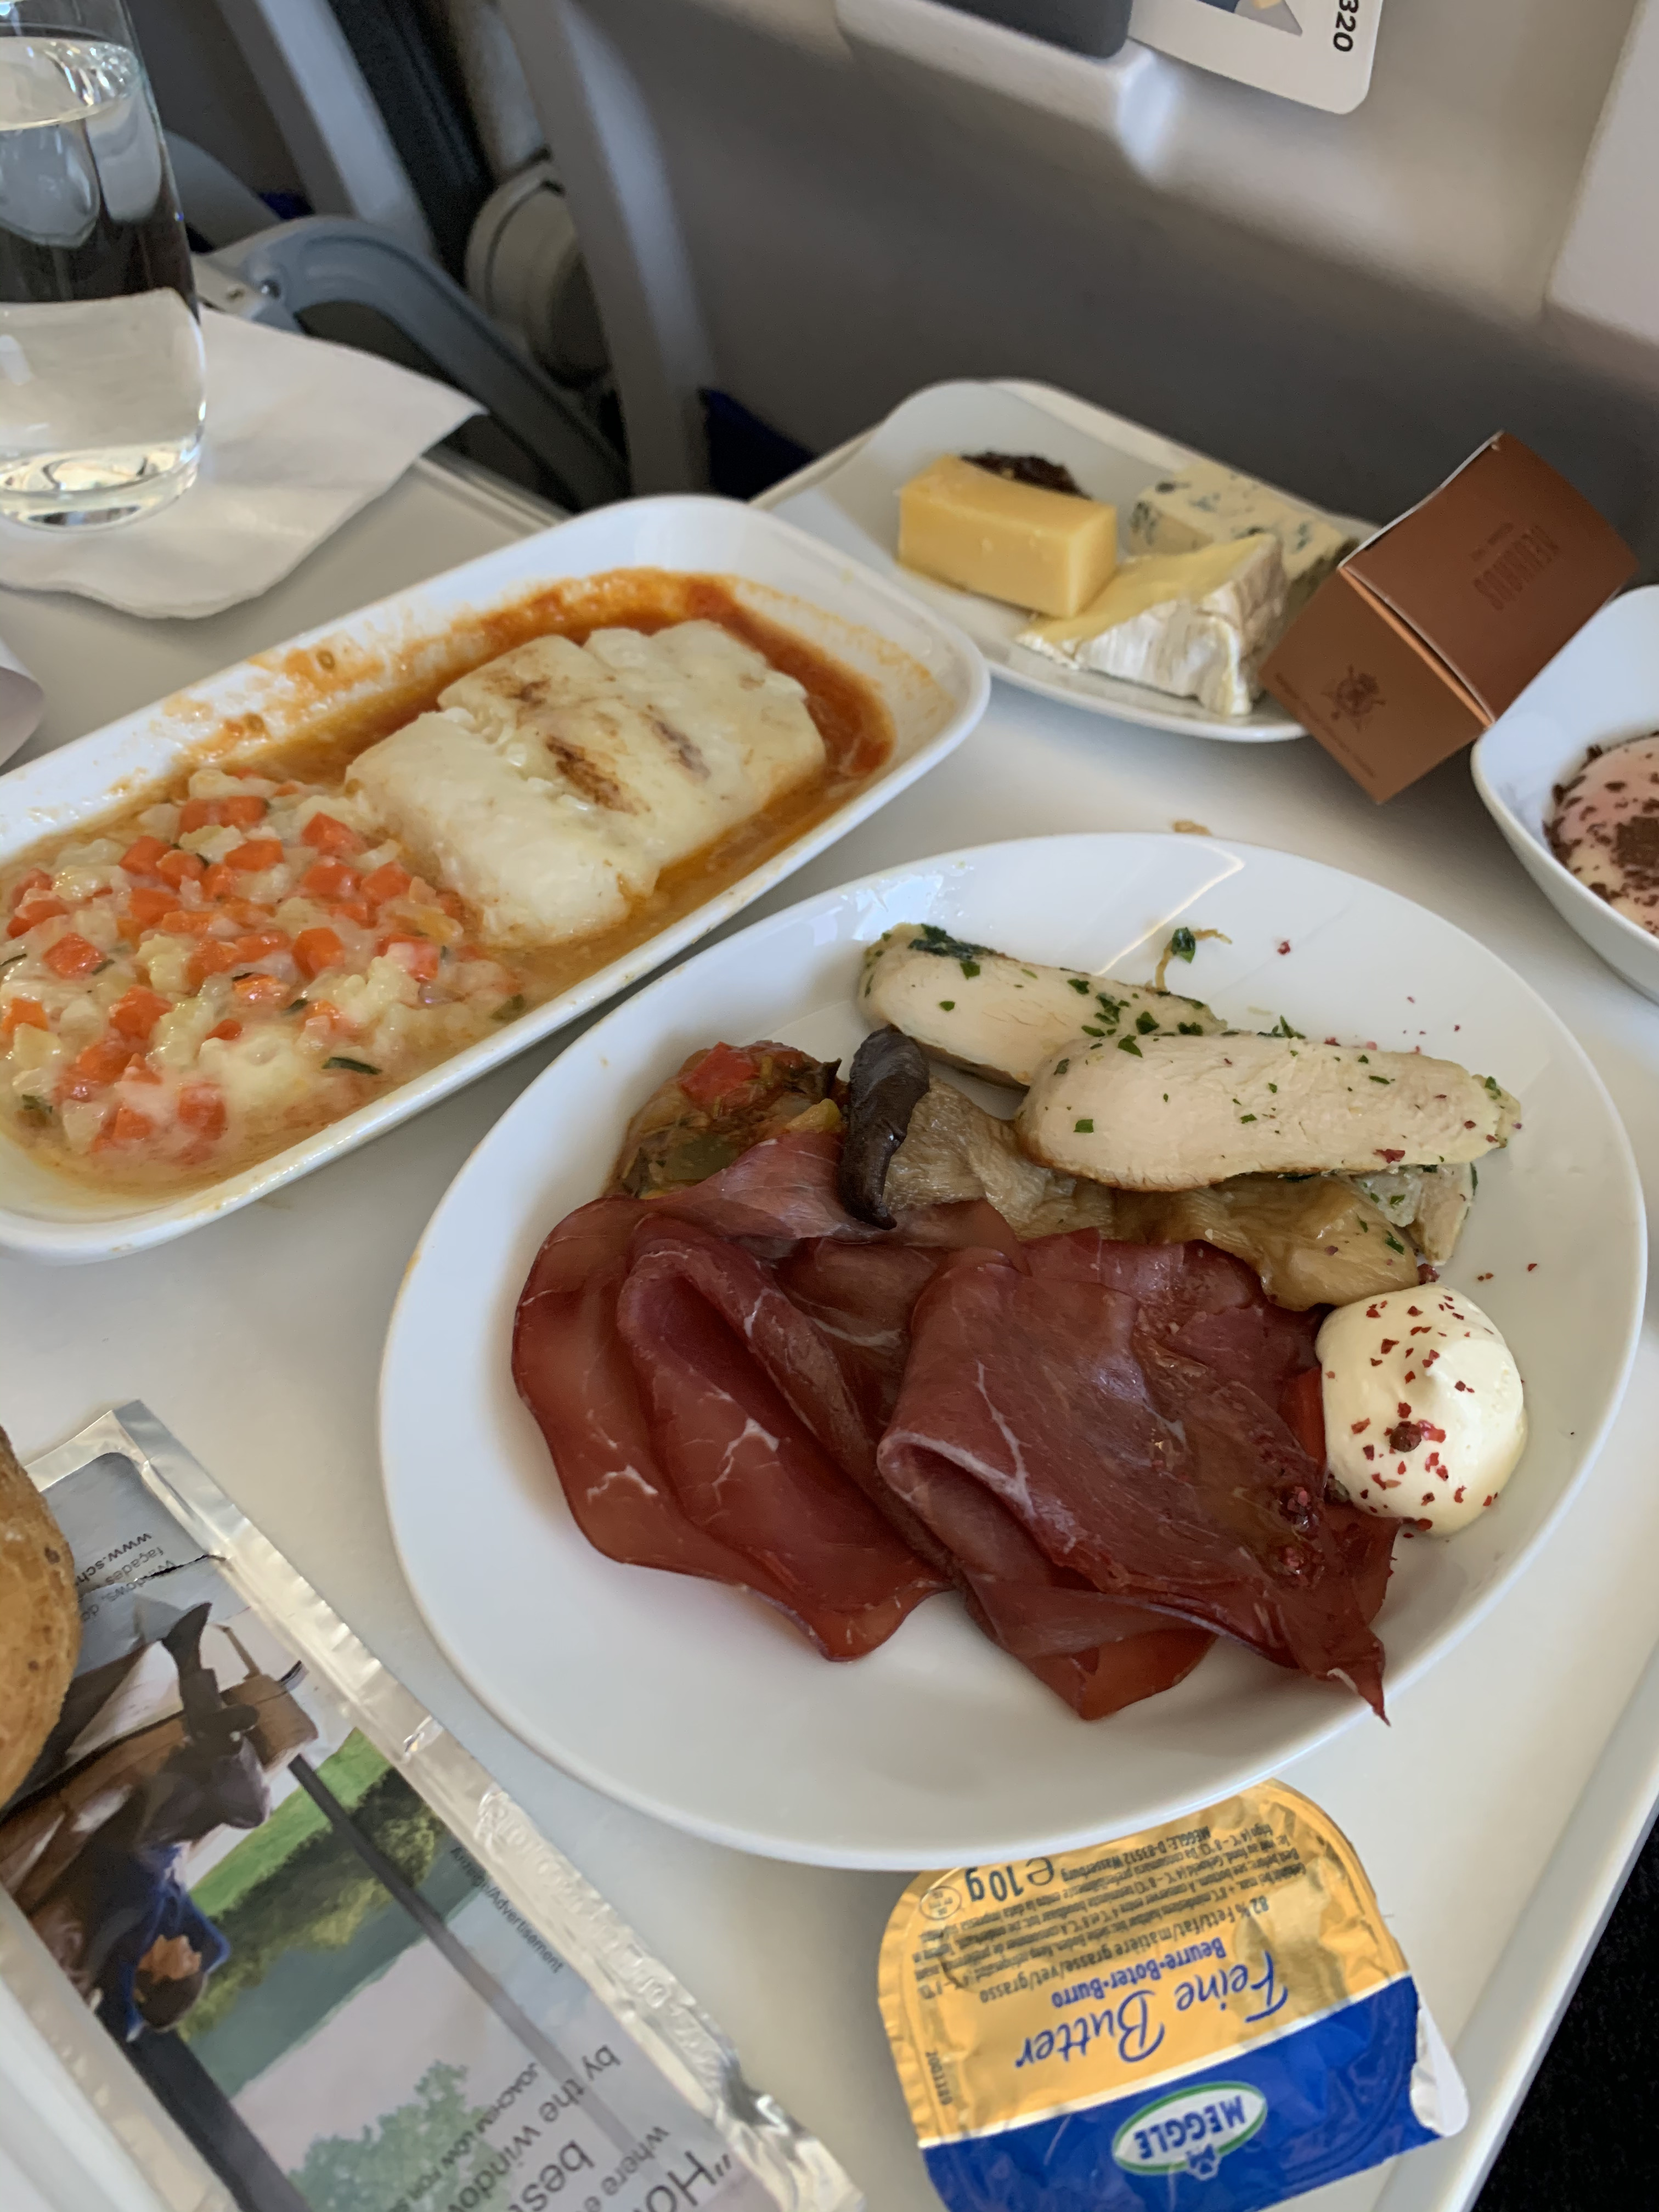 Lufthansa Business Class Review A320neo Athens (ATH) to Istanbul (IST) via Frankfurt (FRA)